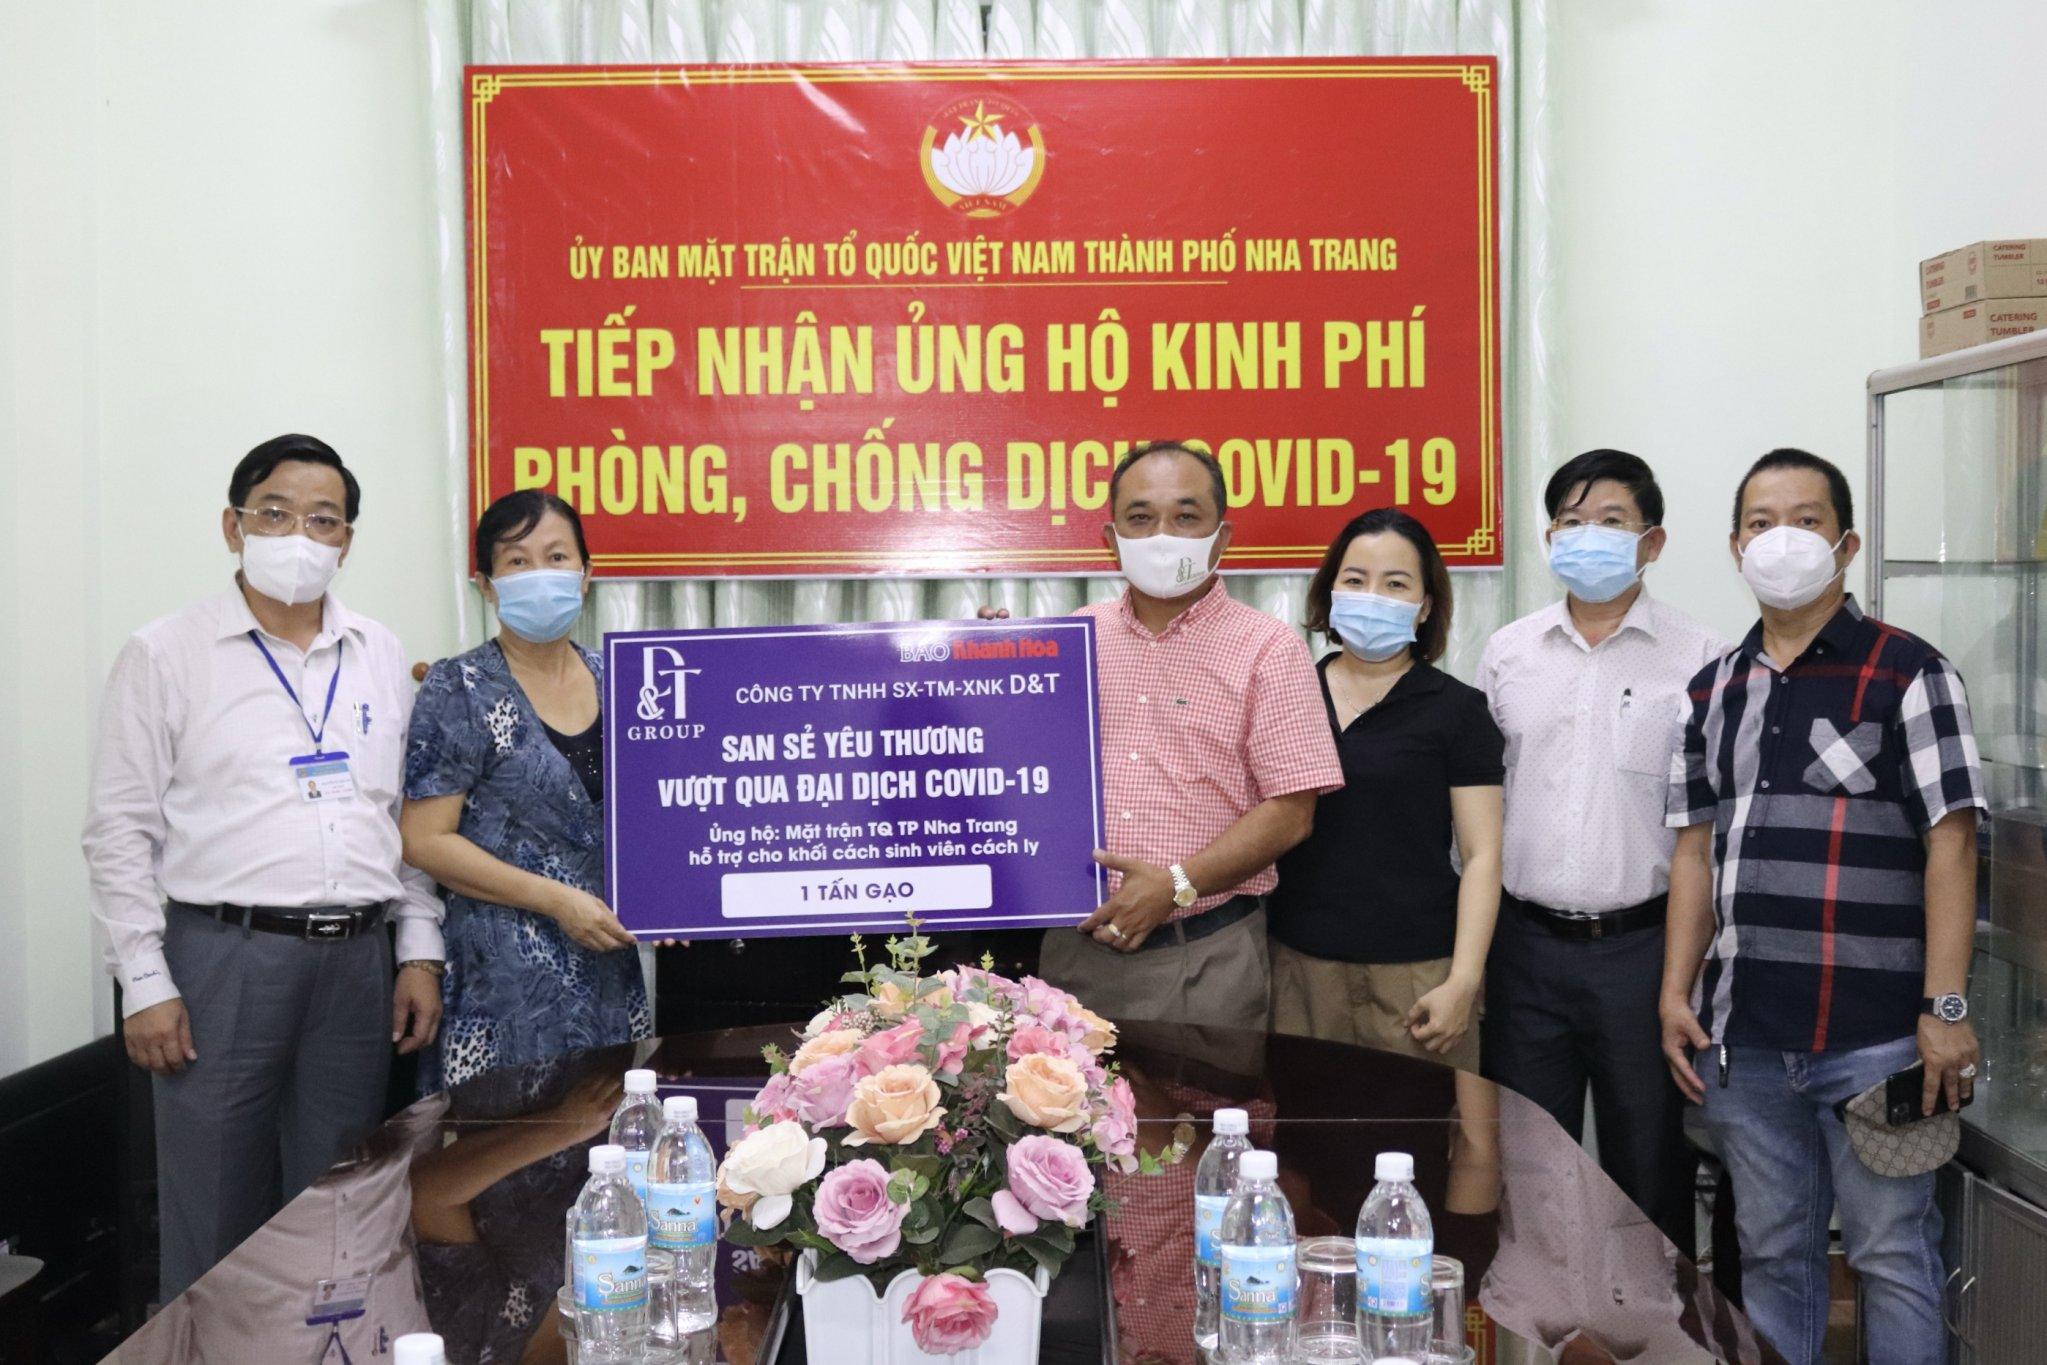 Delegation visiting and offering gifts at Nha Trang City's Vietnam Fatherland Front Committee